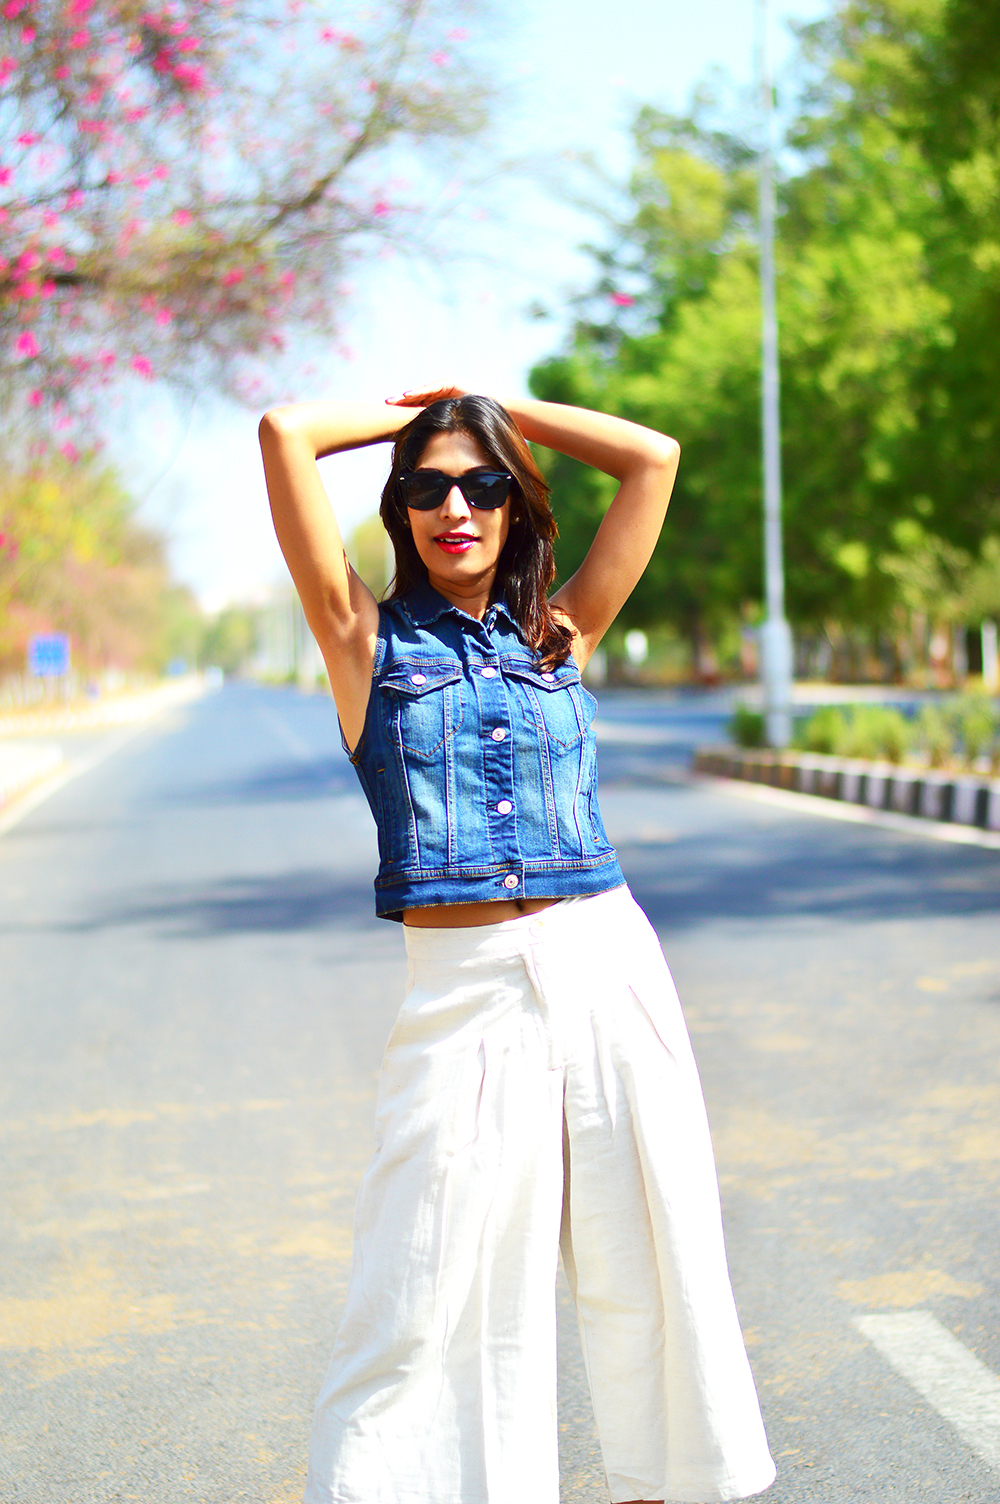 Fashion, Style, Fashion Blogger, Indian Fashion Blogger, Photography, Fashion Blog, Indian Fashion Blog, Street Style, Denim Vest, Culottes, Personal Style Blogger